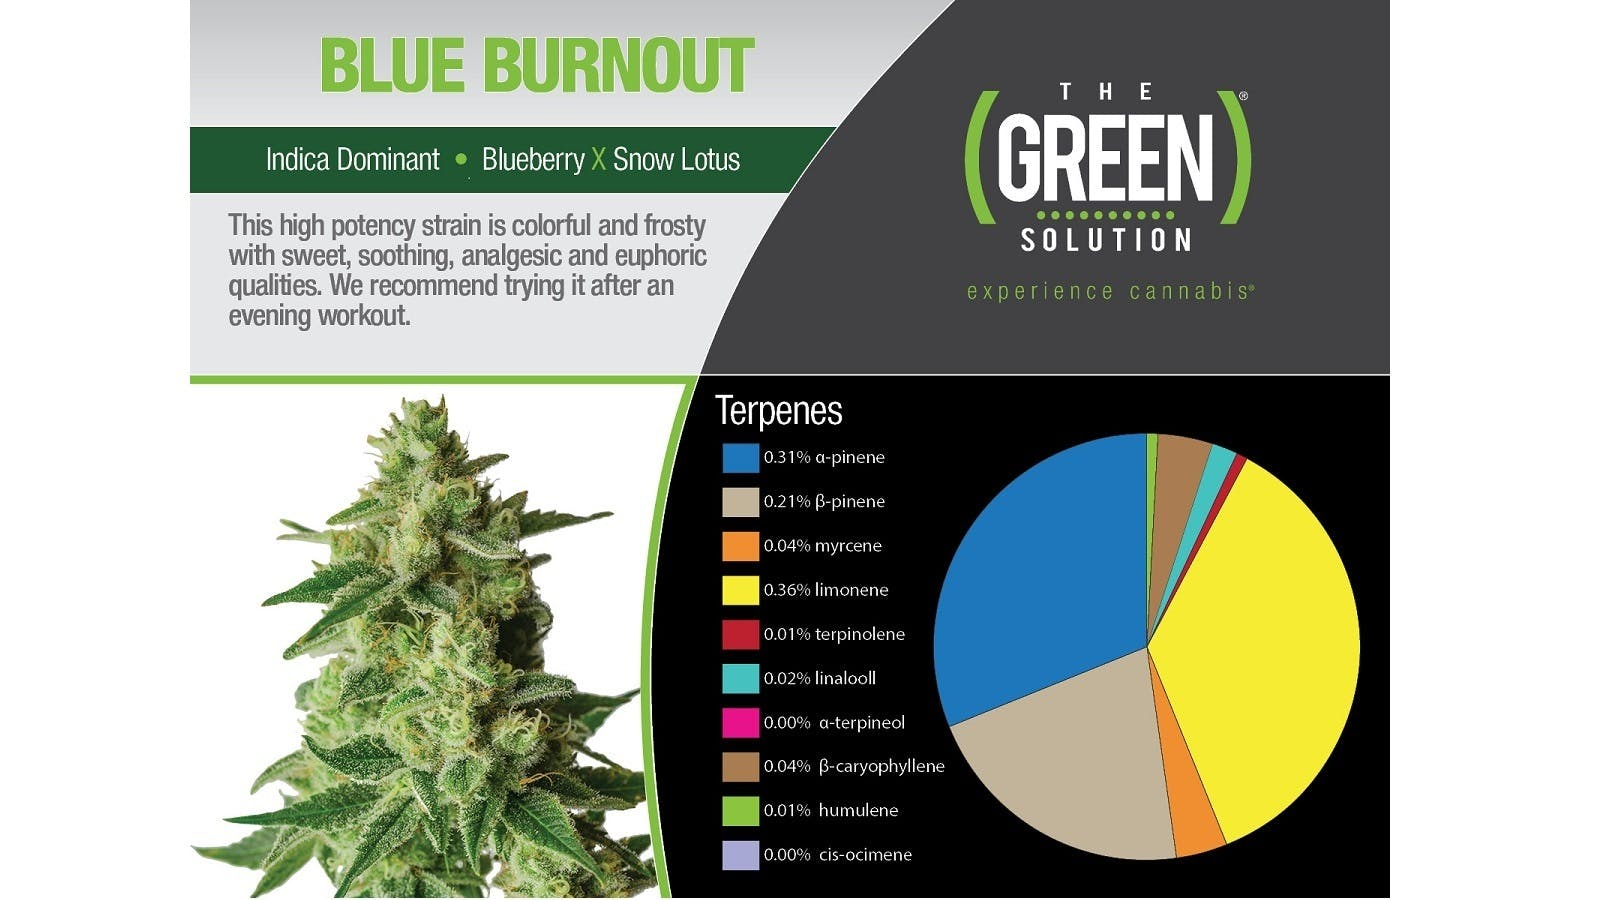 marijuana-dispensaries-the-green-solution-union-station-in-denver-blue-burnout